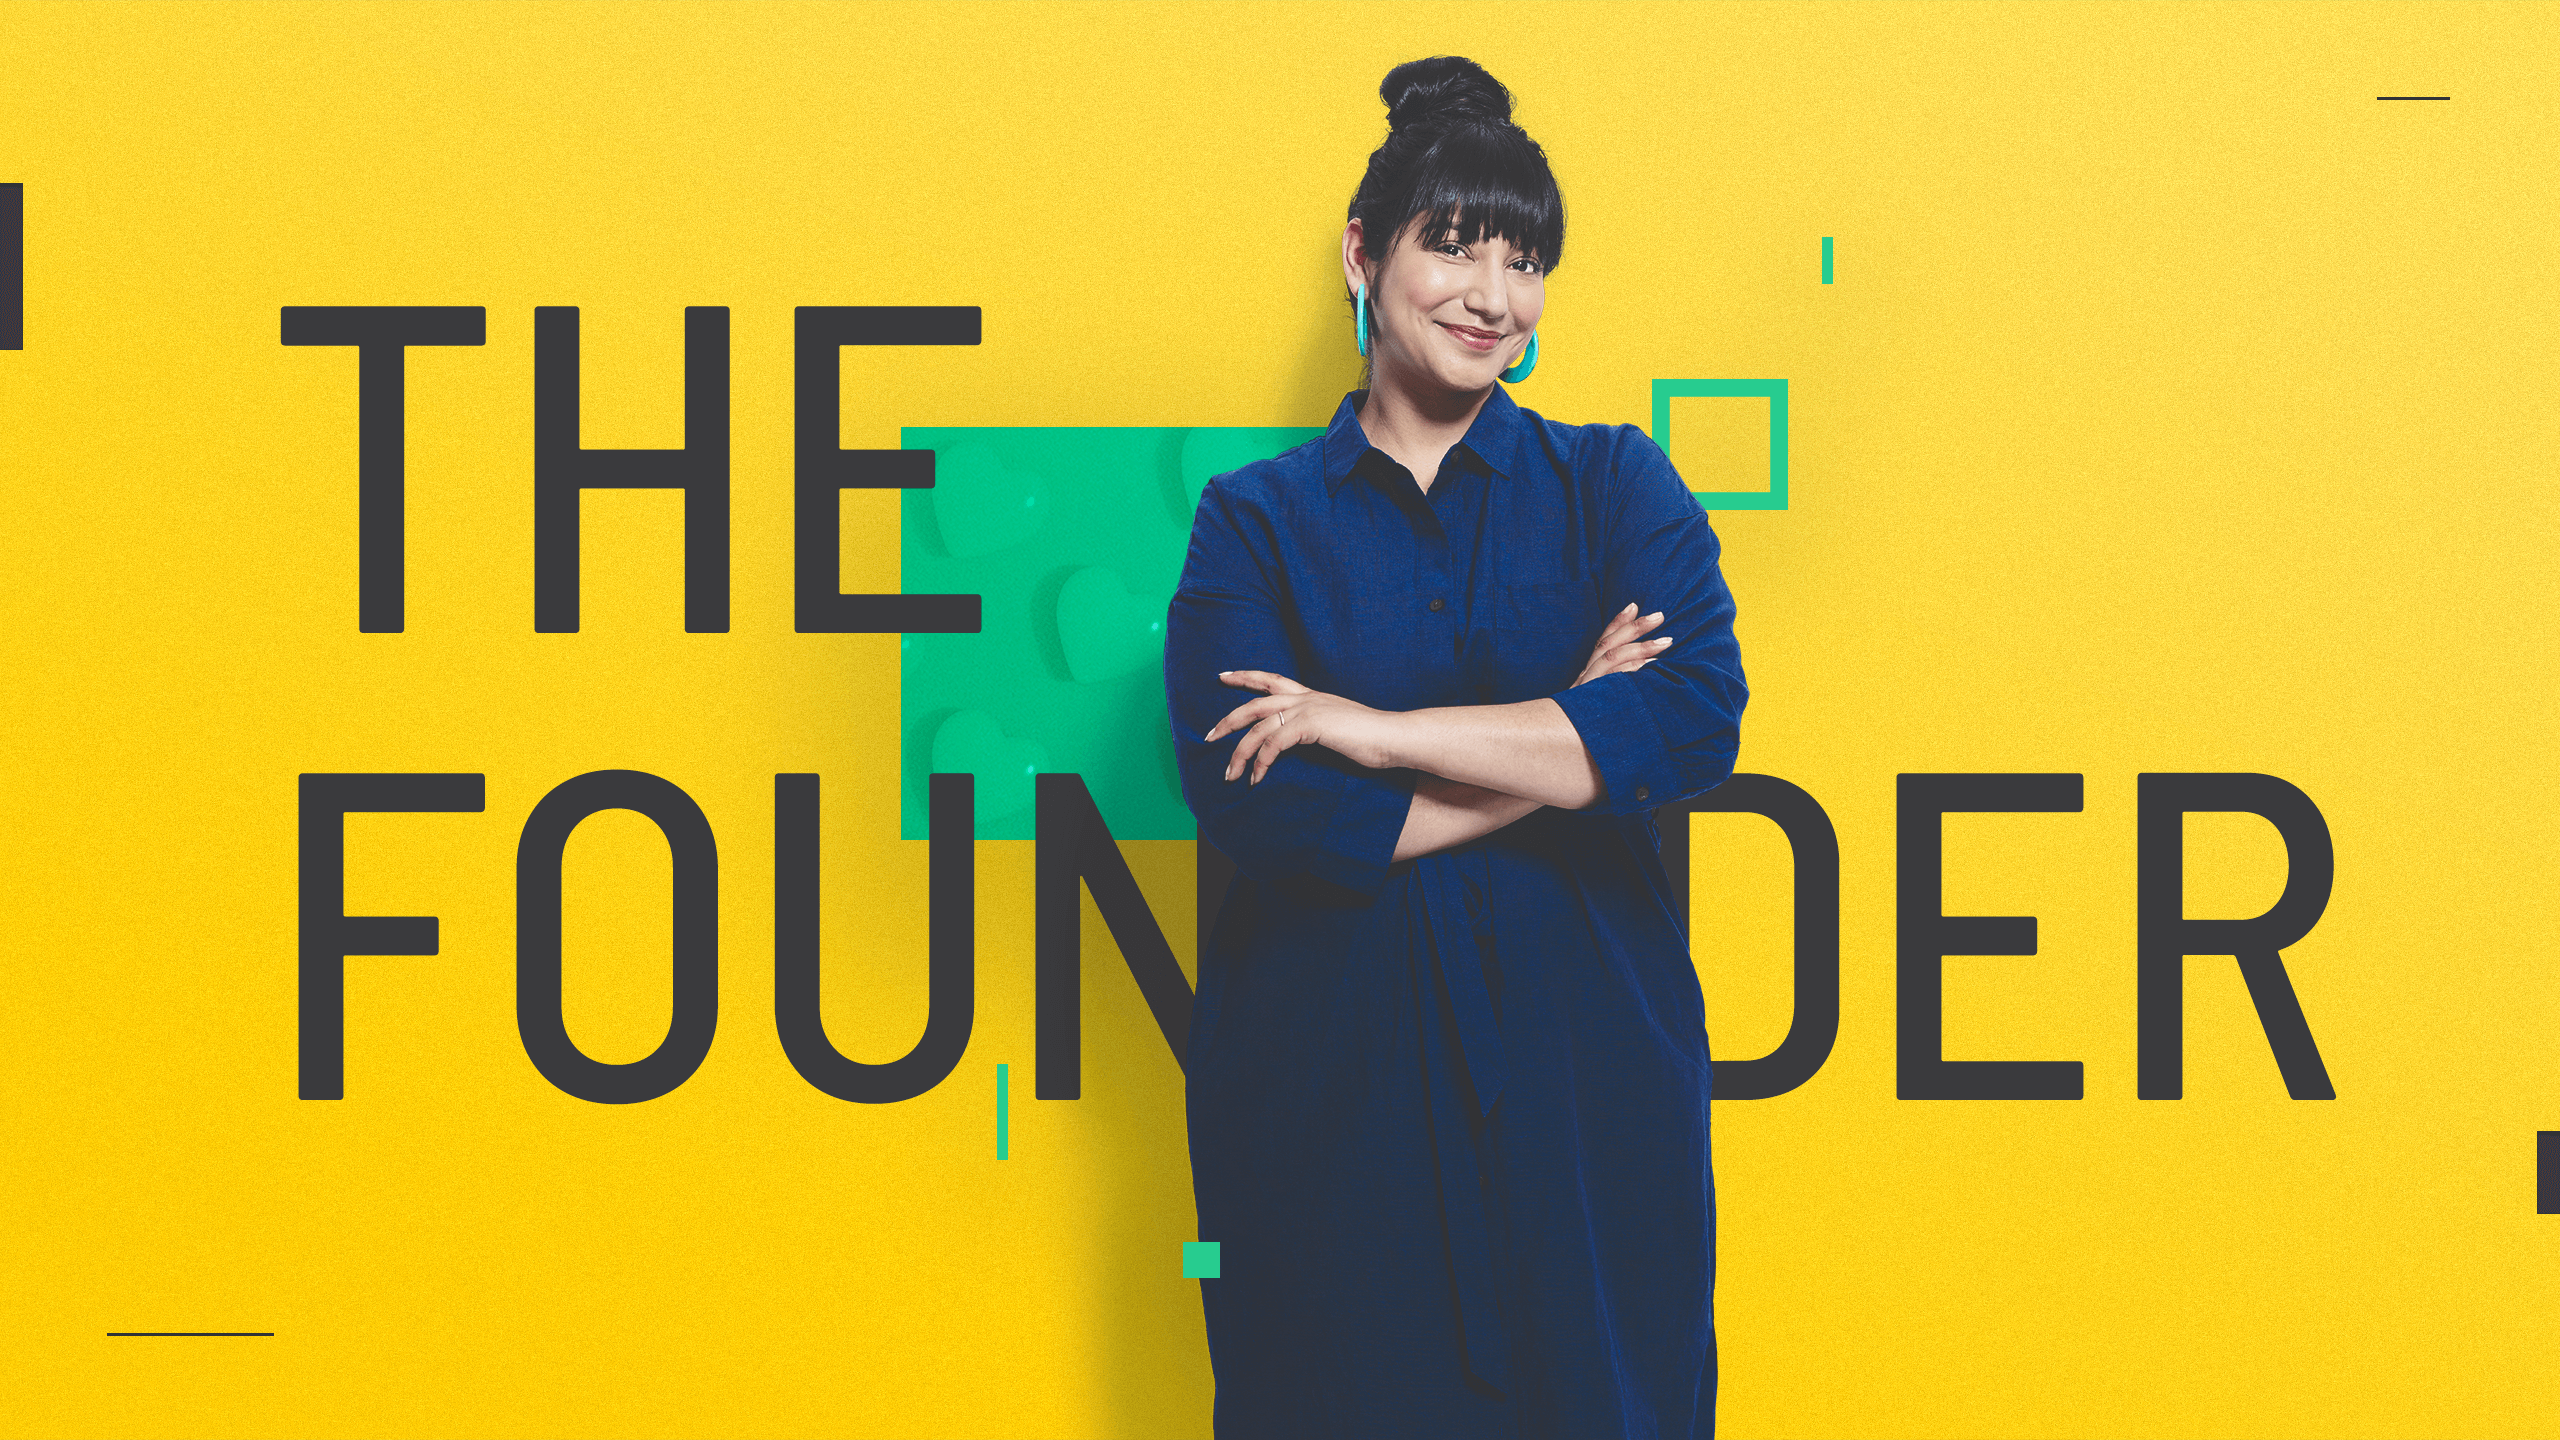 unbounce-archetypes-2019-section-cover-founder